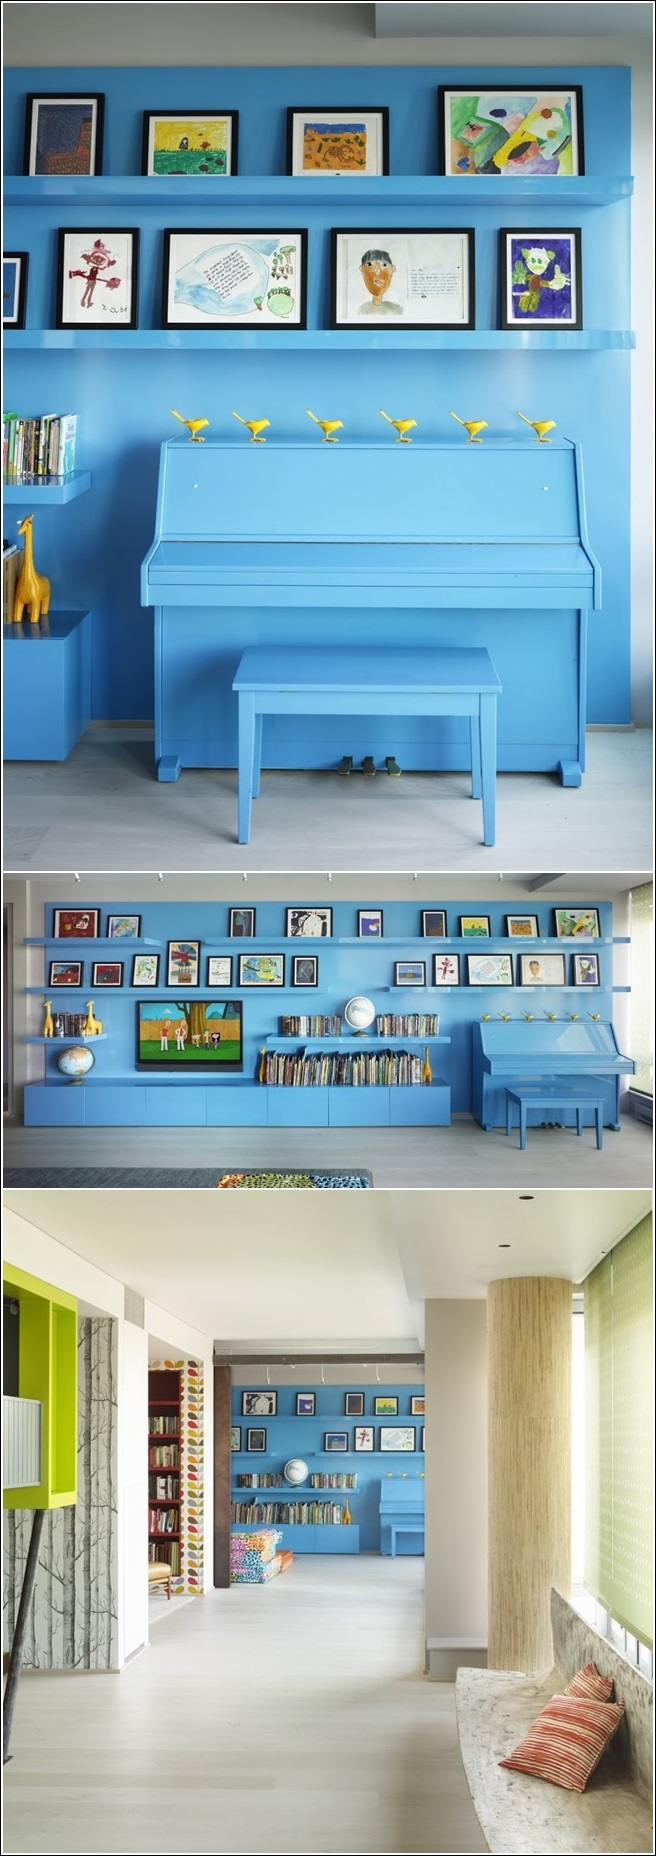 Design Some Musical Interior With A Piano